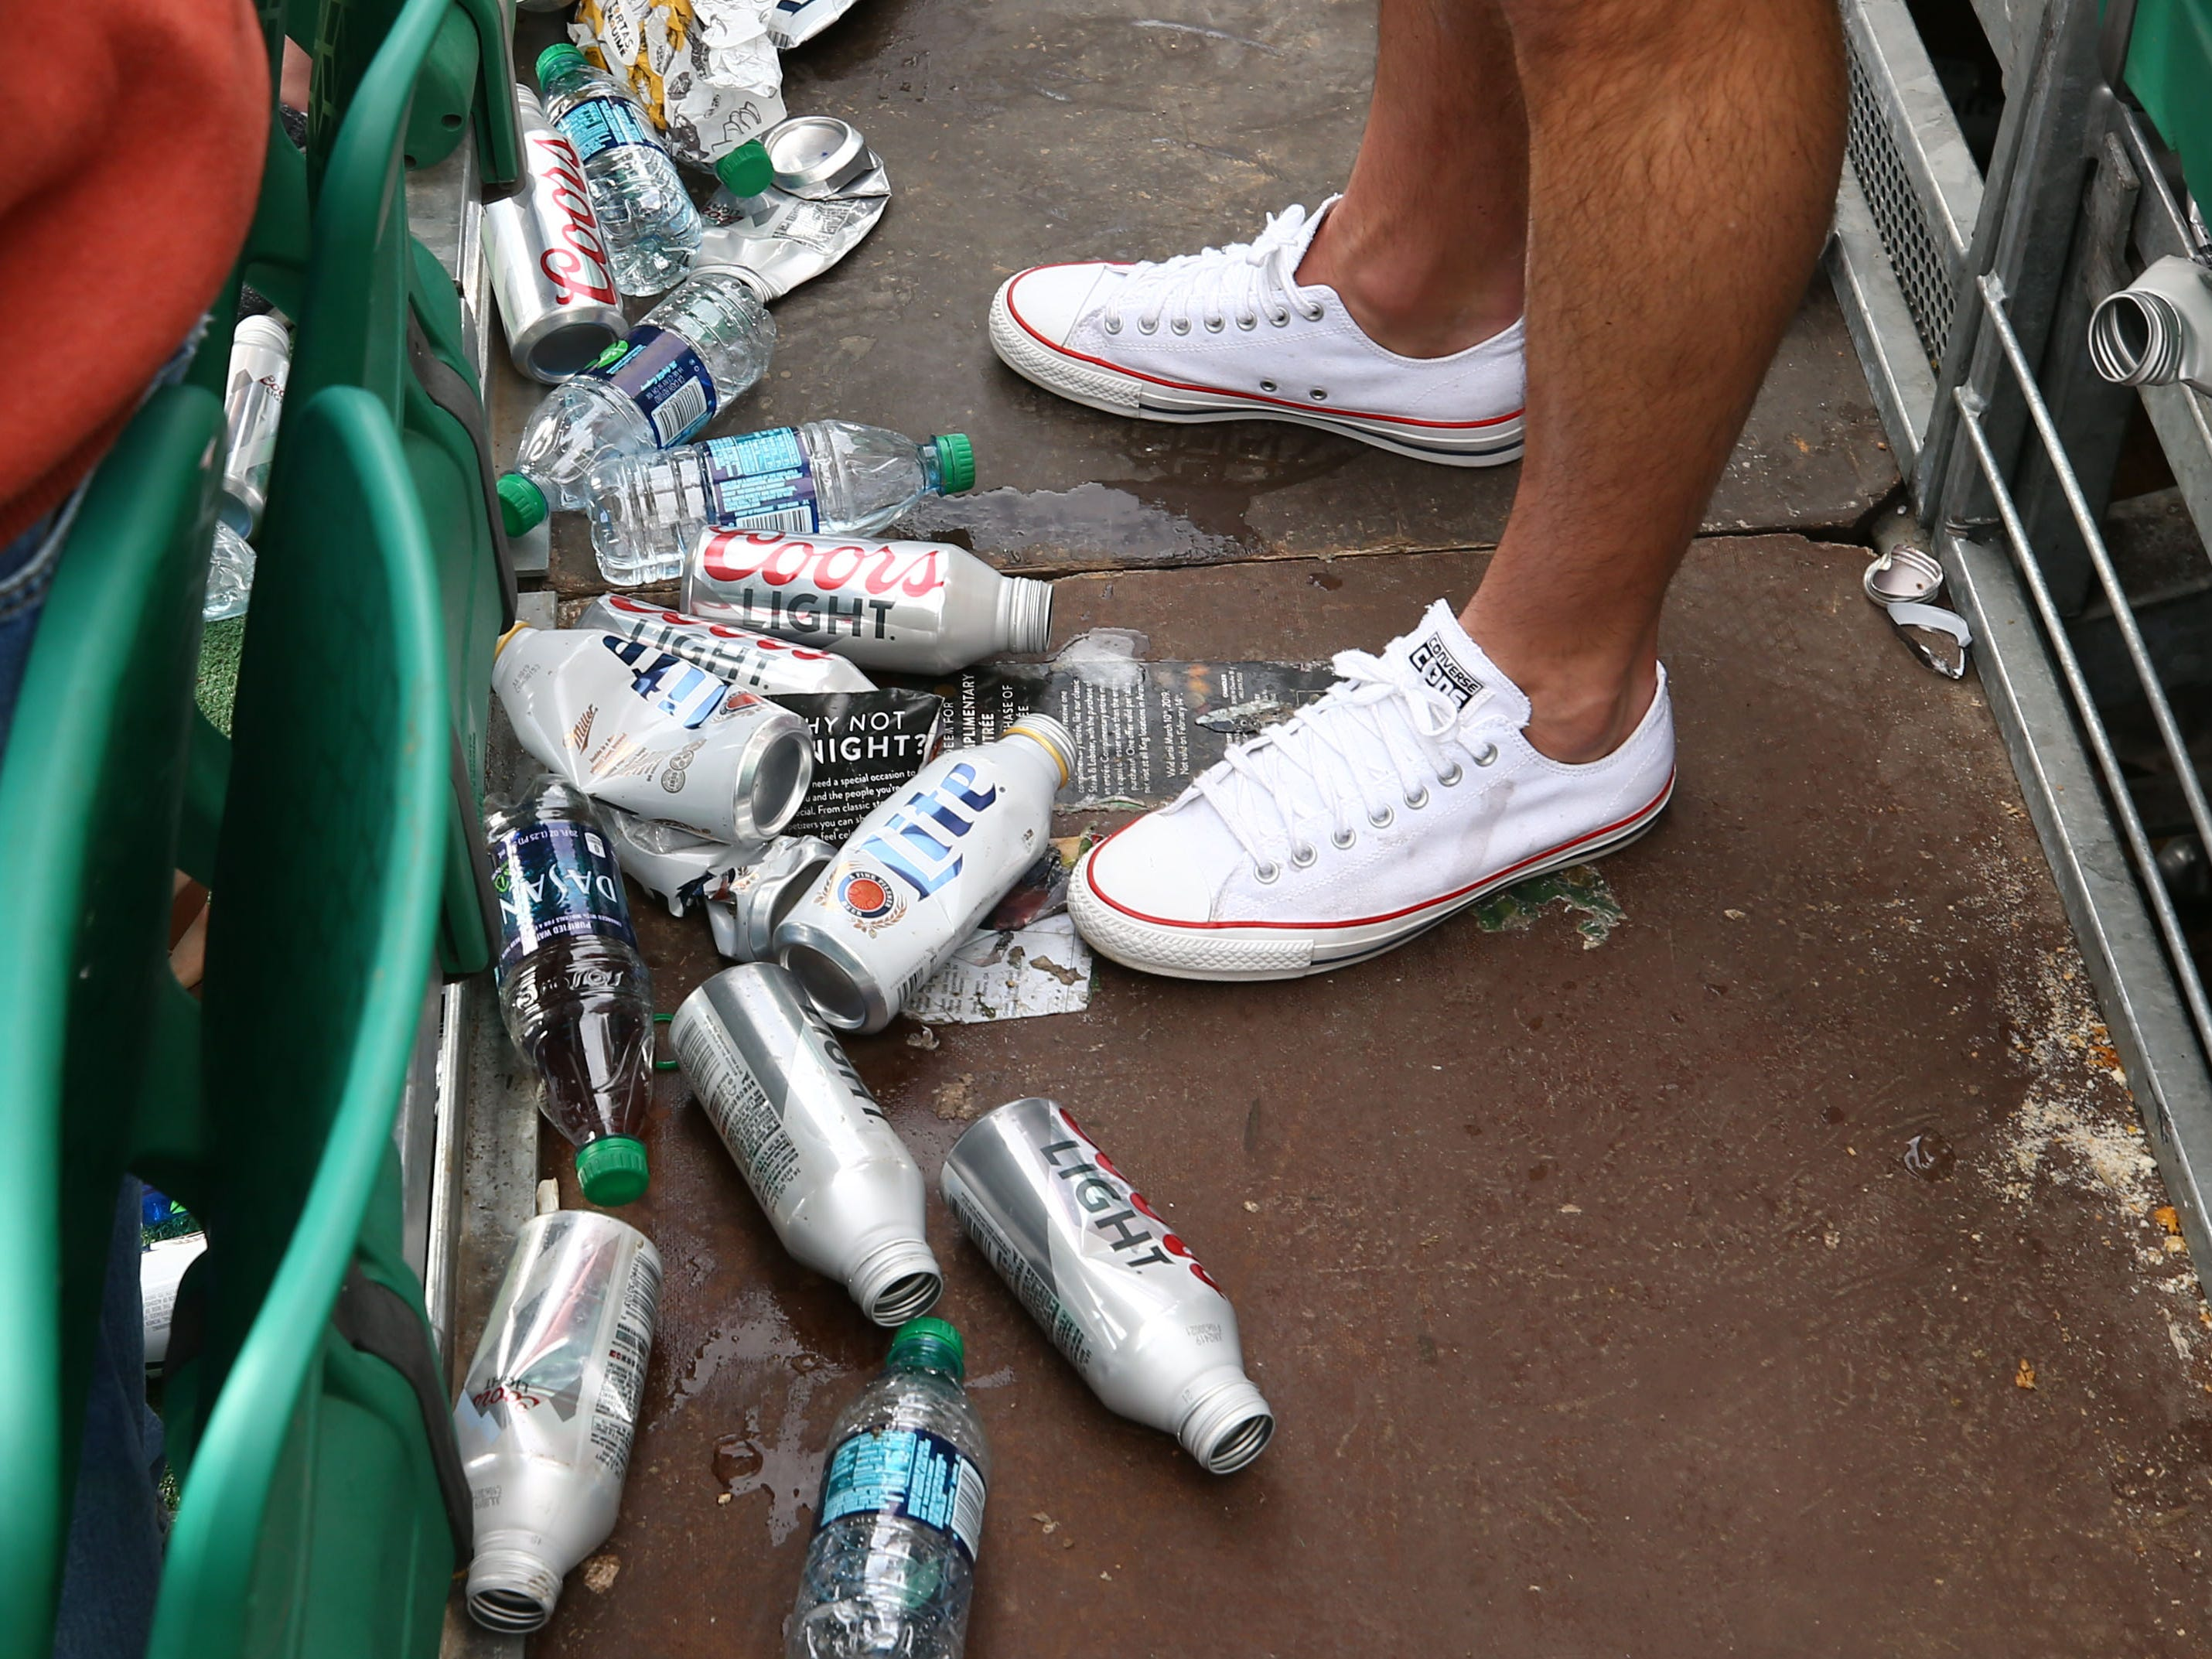 Trash in the stands on the 16th hole during third round action on Feb. 2 during the Waste Management Phoenix Open at the TPC Scottsdale Stadium Course.